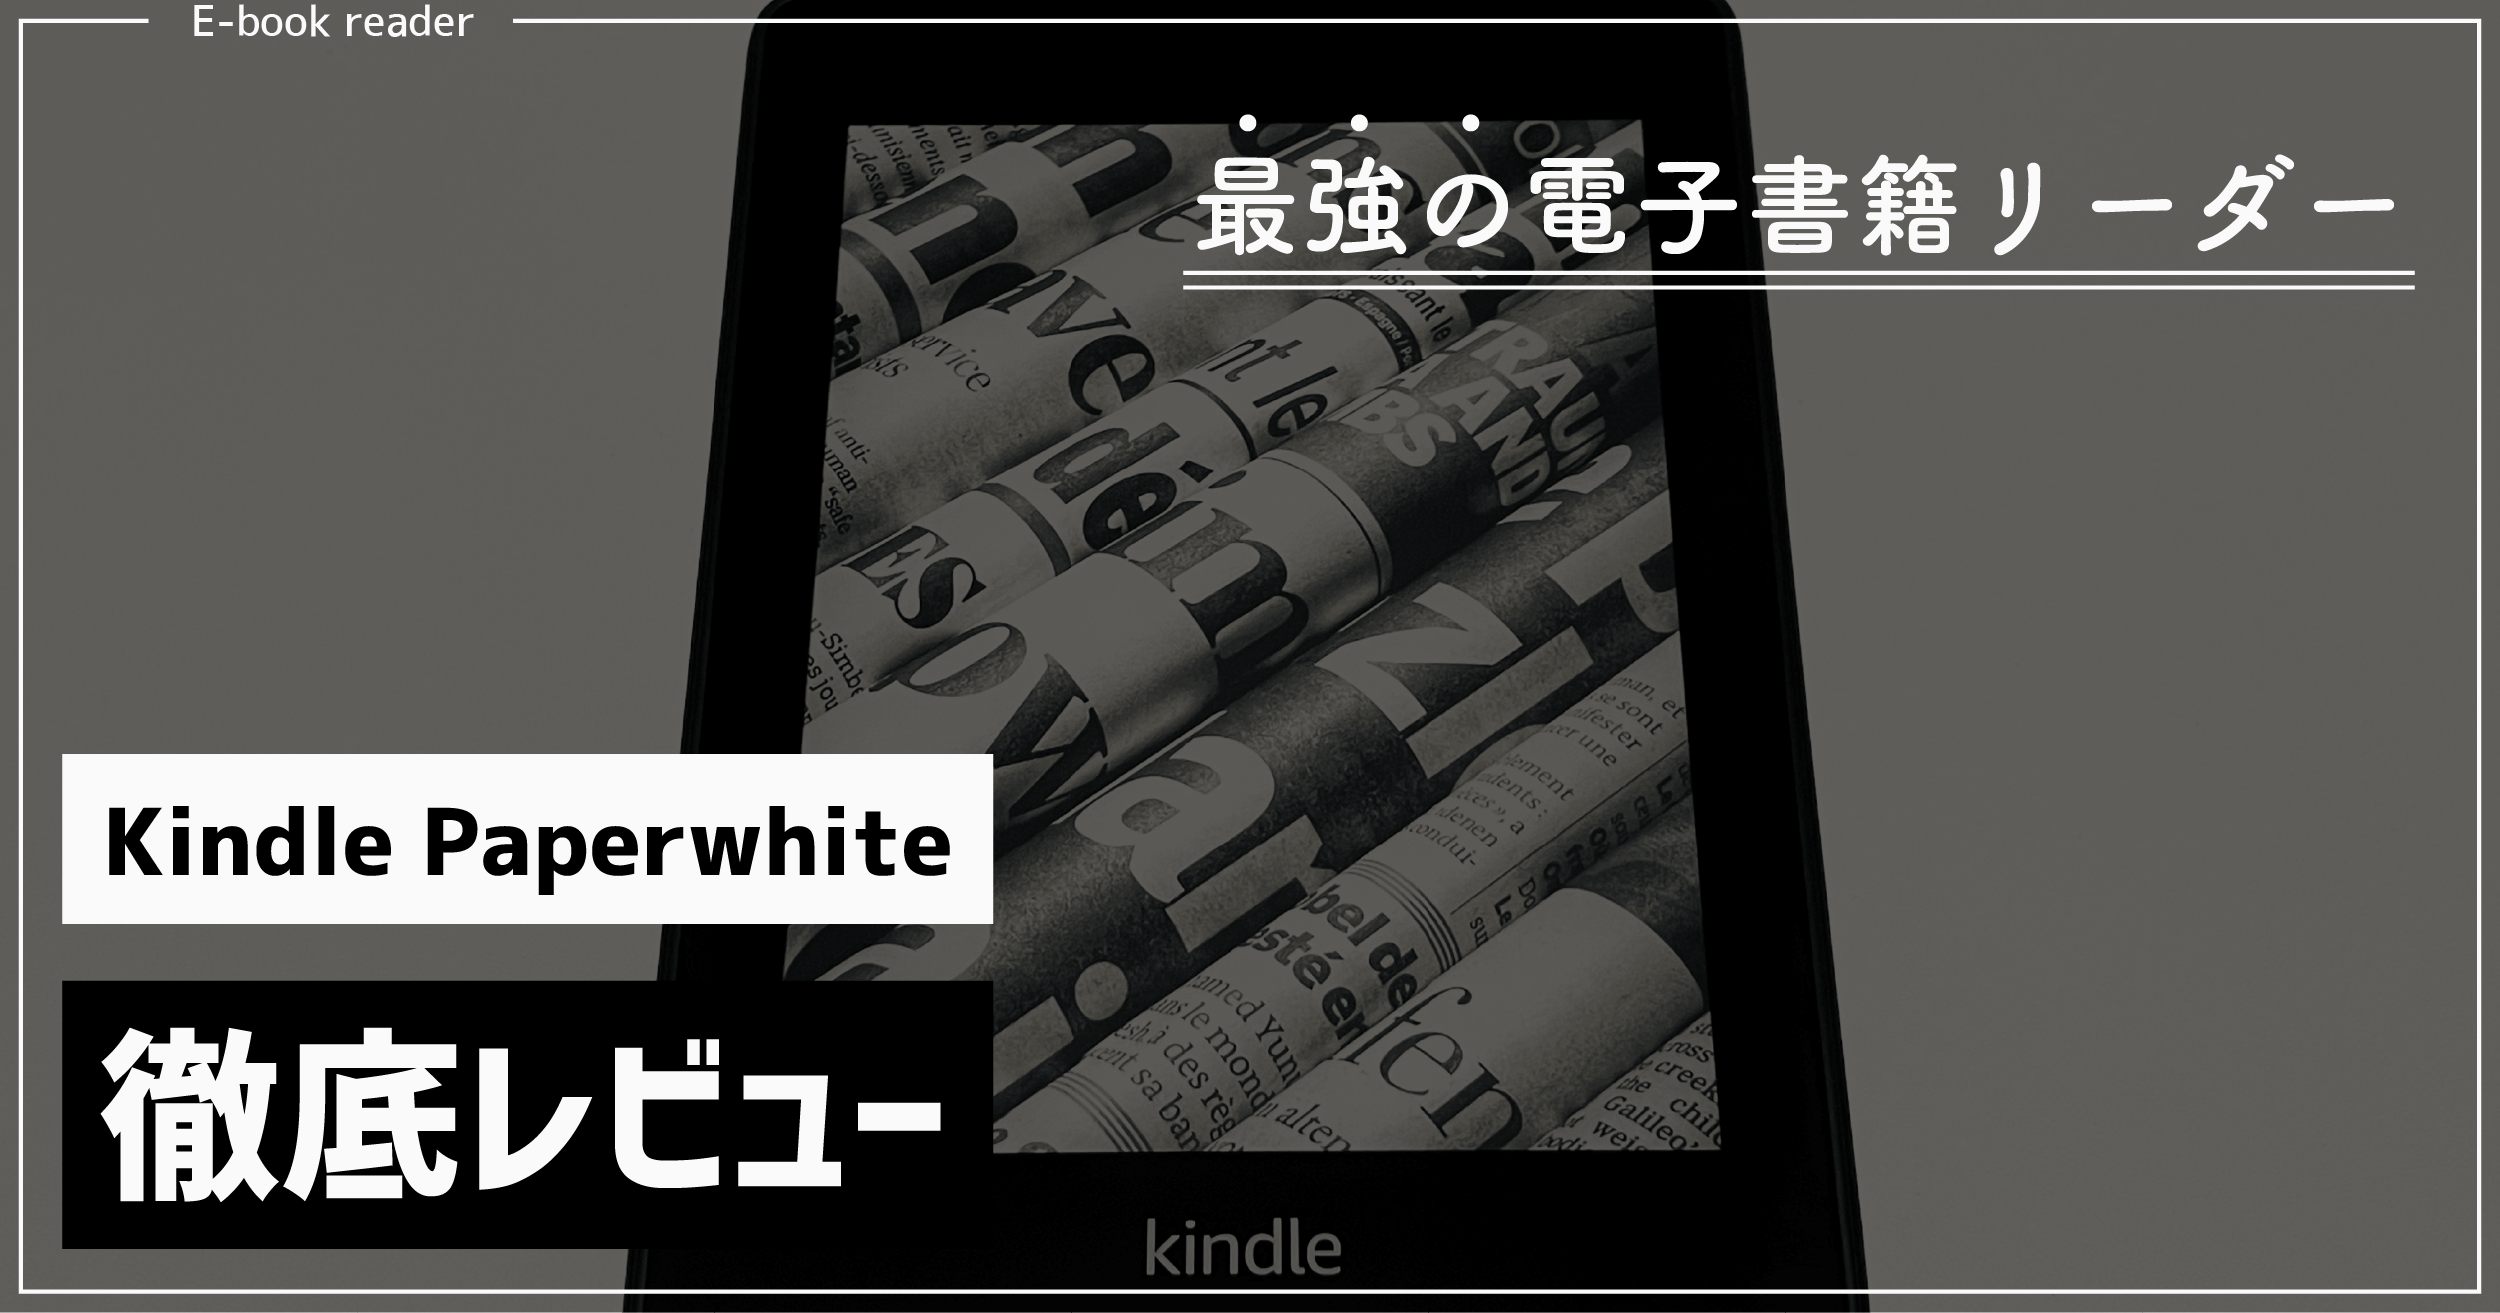 KindlePaperwhite徹底レビュー